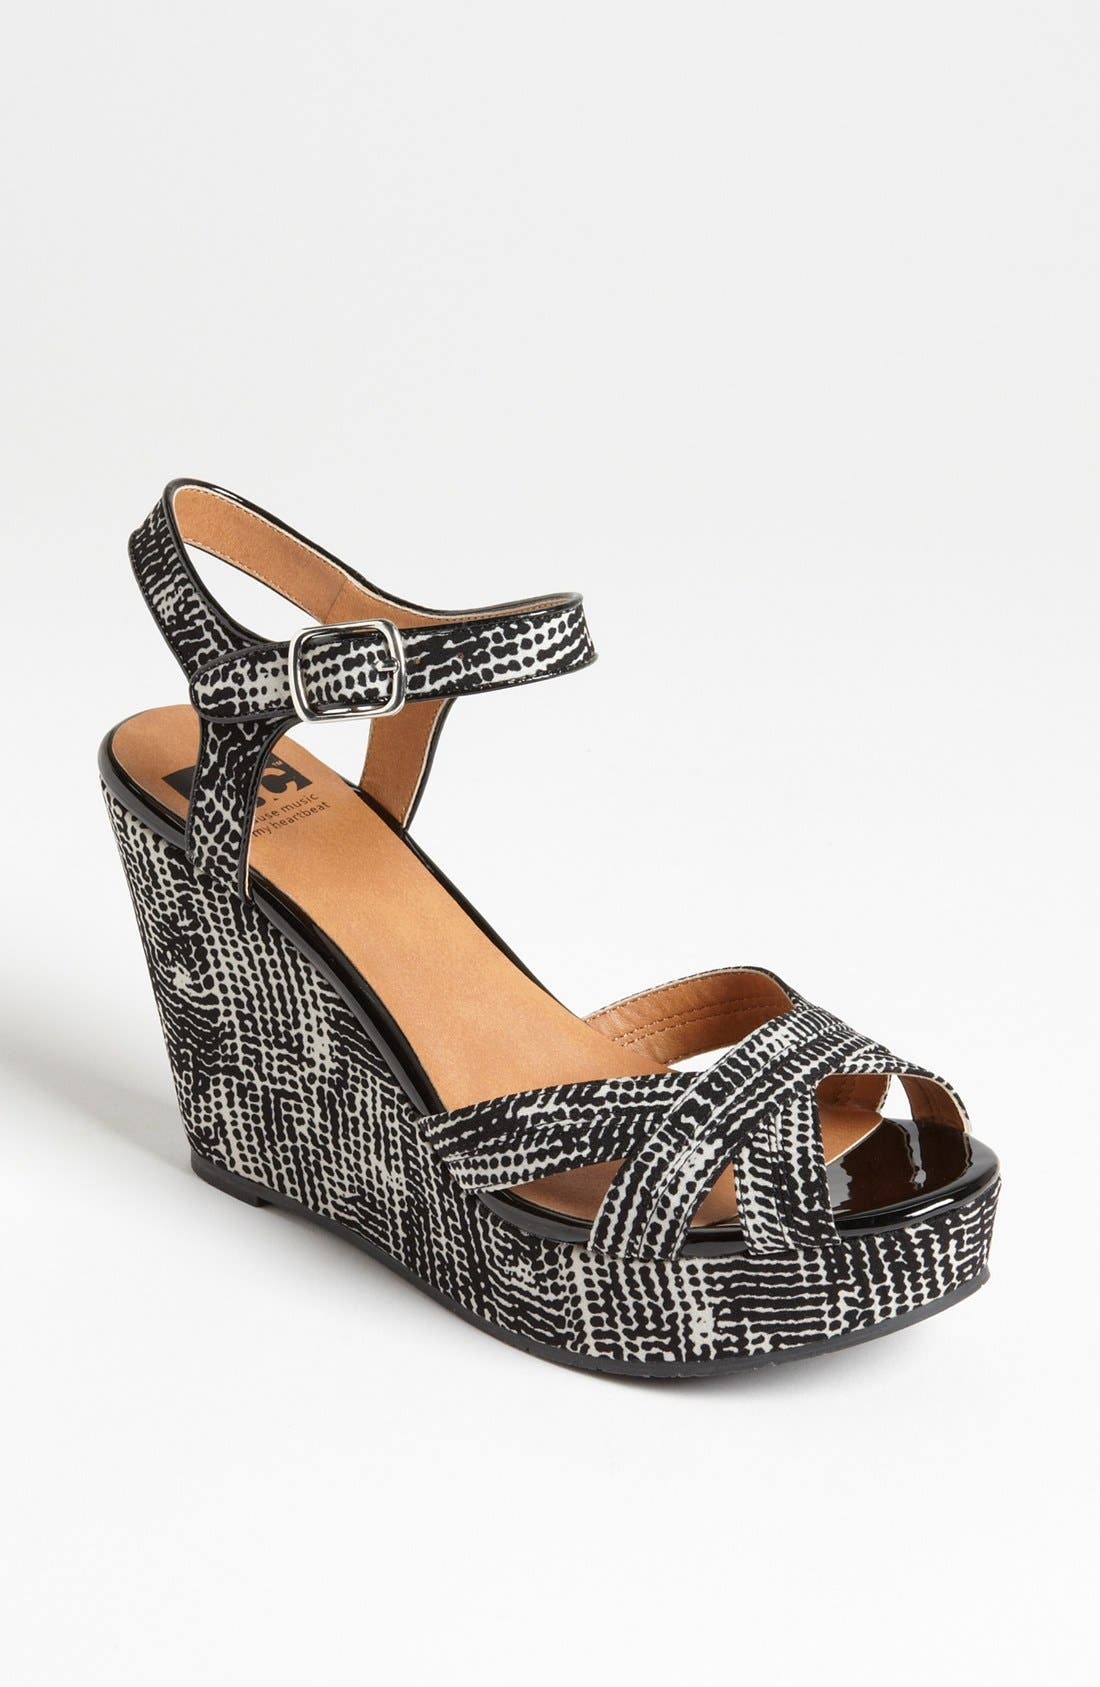 Alternate Image 1 Selected - BC Footwear 'Kissable' Ankle Strap Wedge